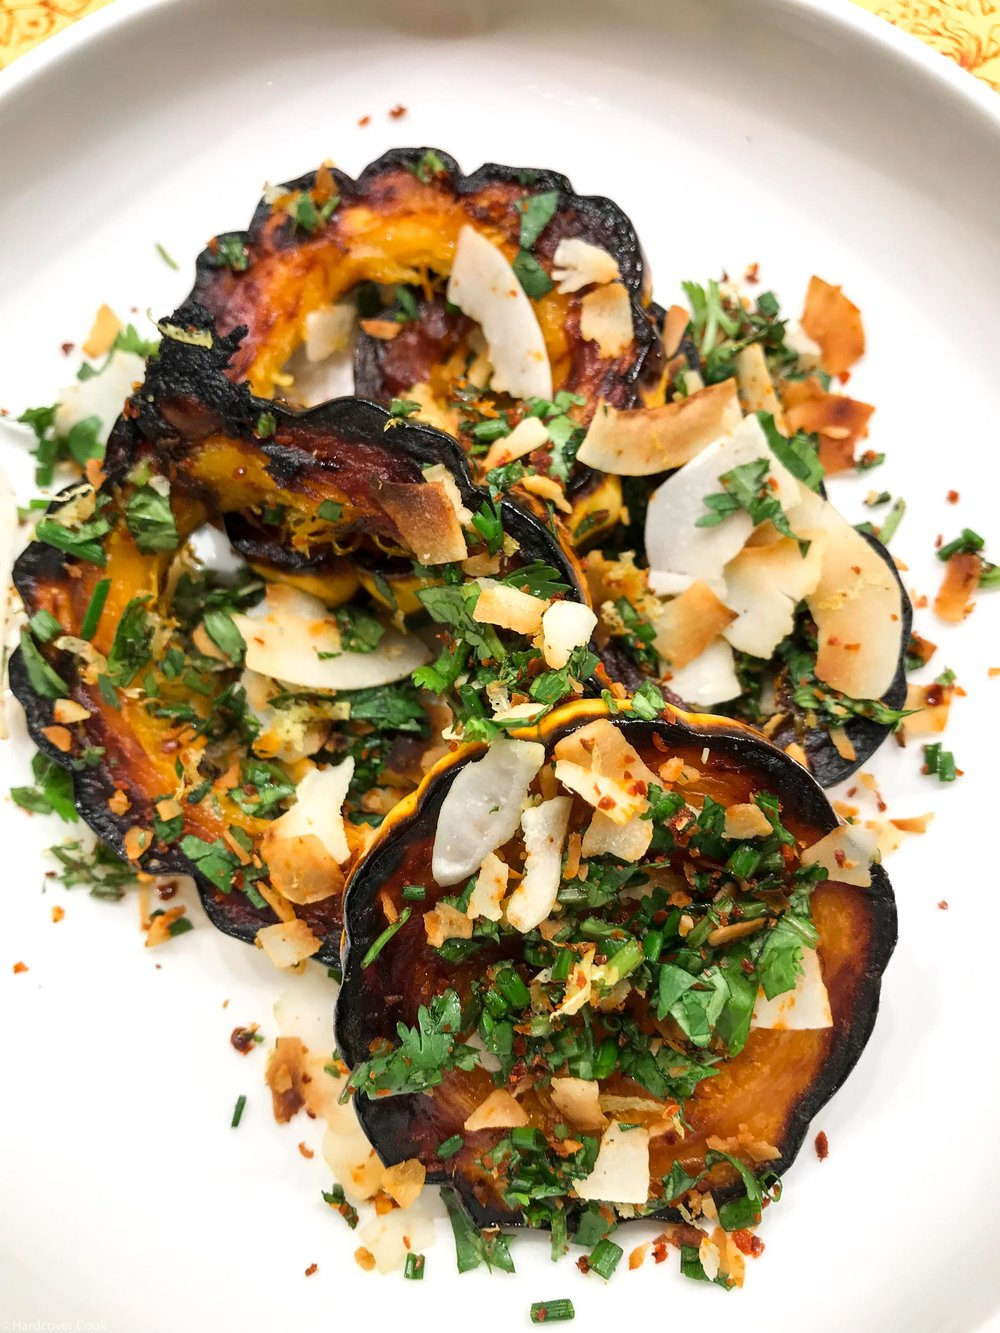 Carmelized Winter Squash and Coconut Gremolata from Dining In